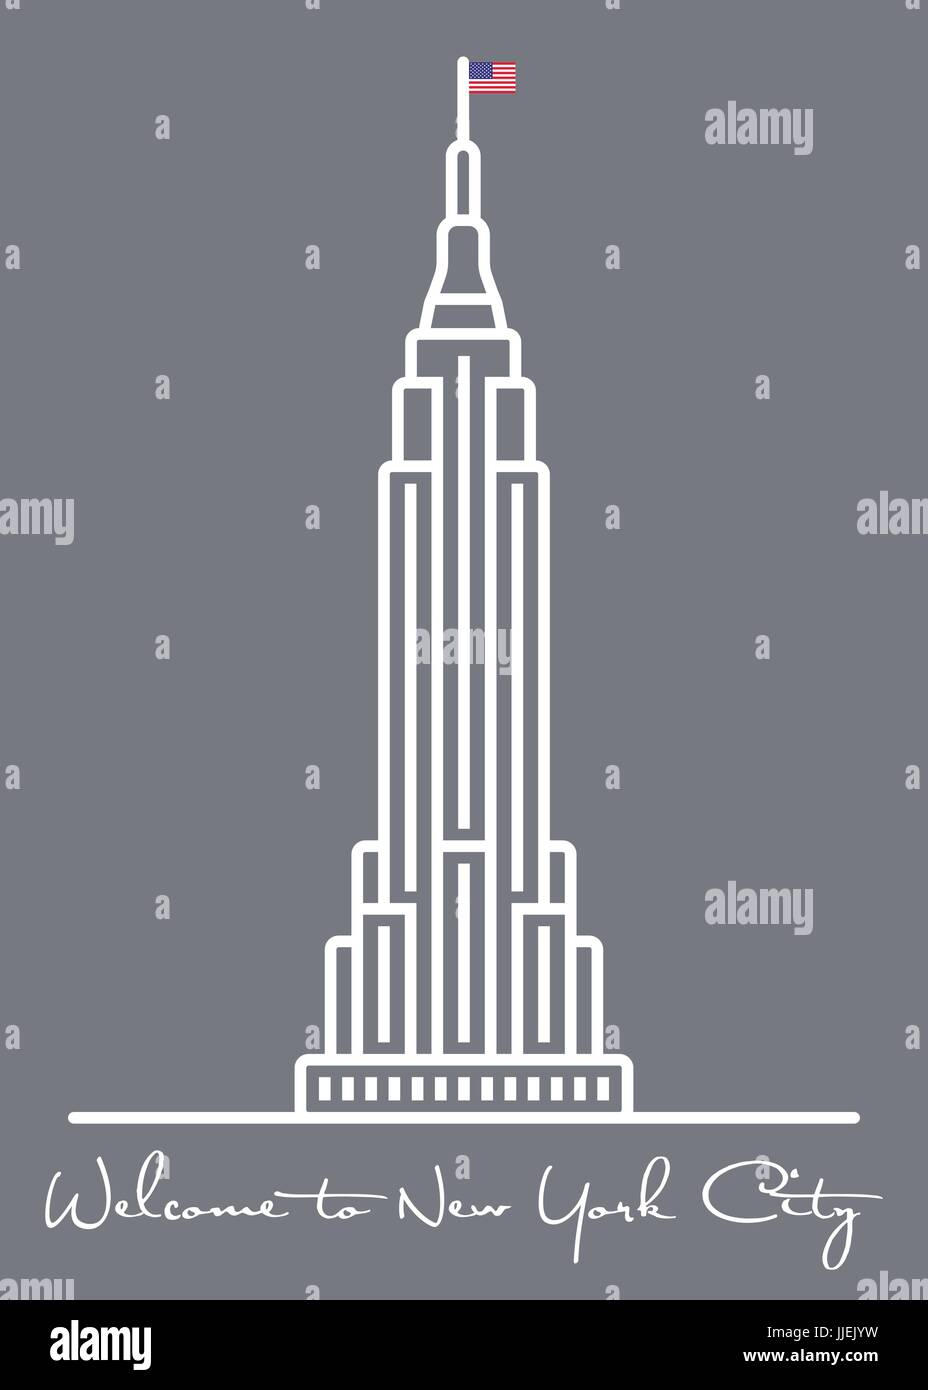 Welcome To New York City Greeting Card With Skyscraper Line Icon